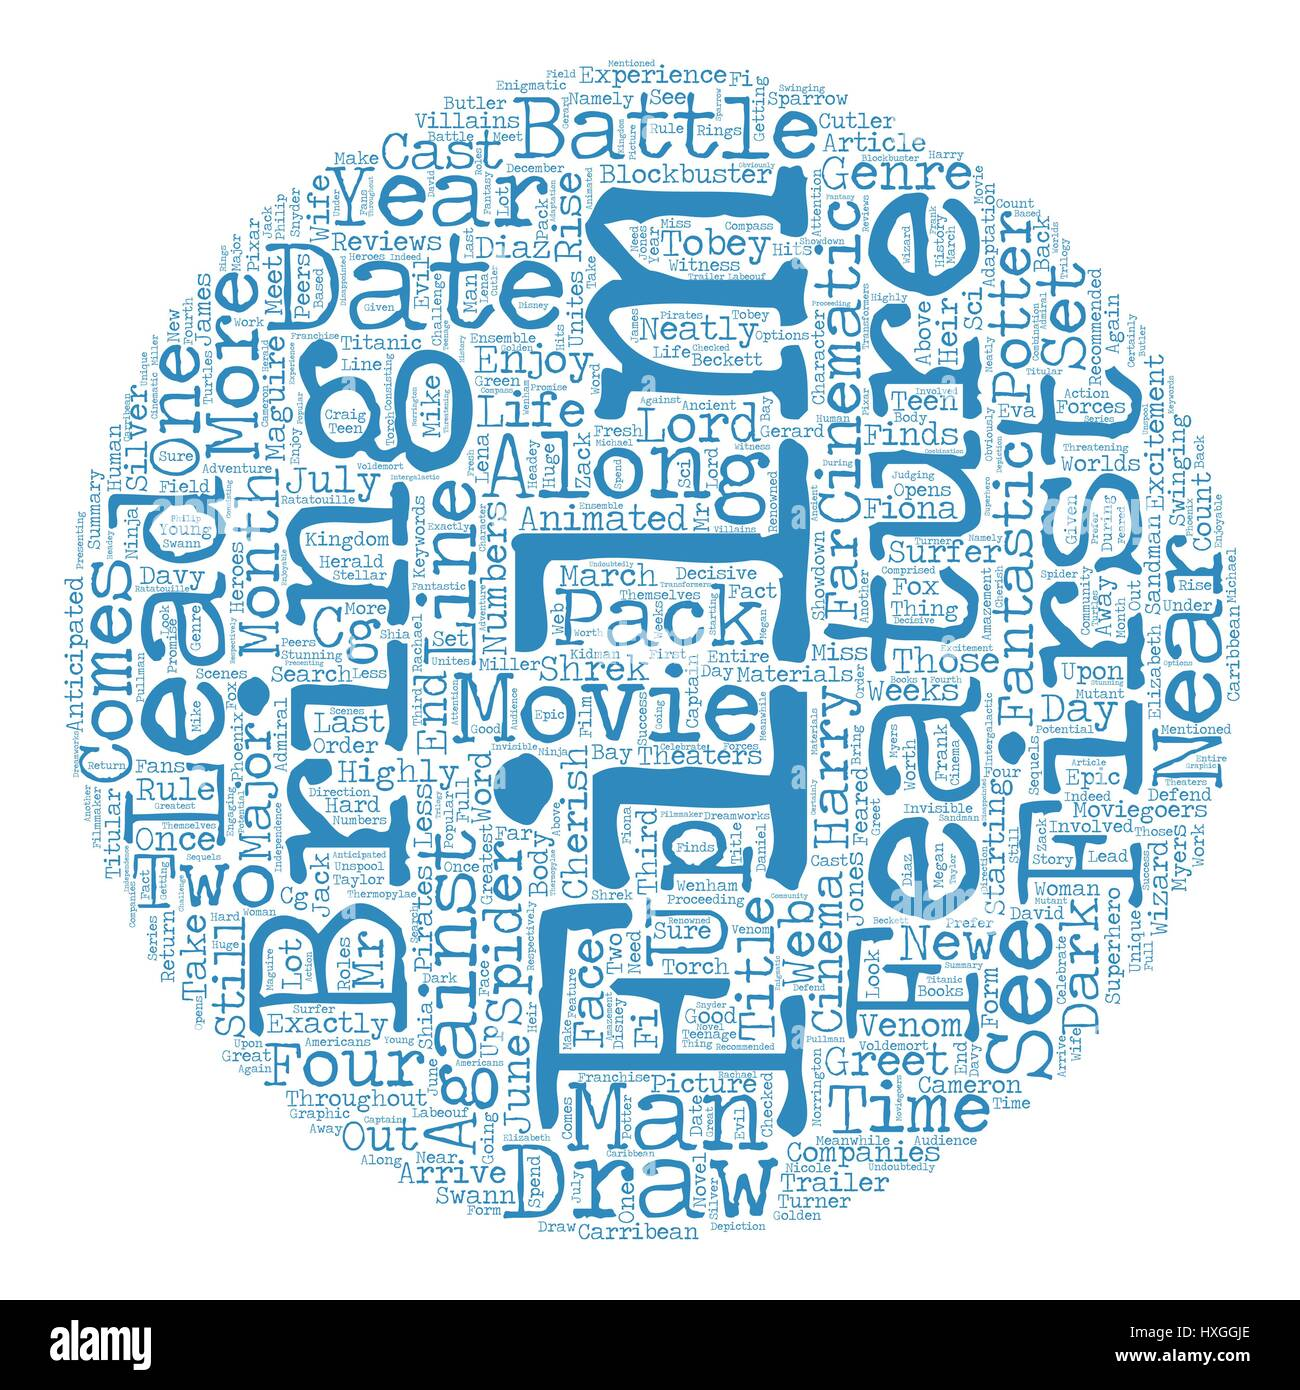 Recommended Movie In 2007 text background wordcloud concept - Stock Vector